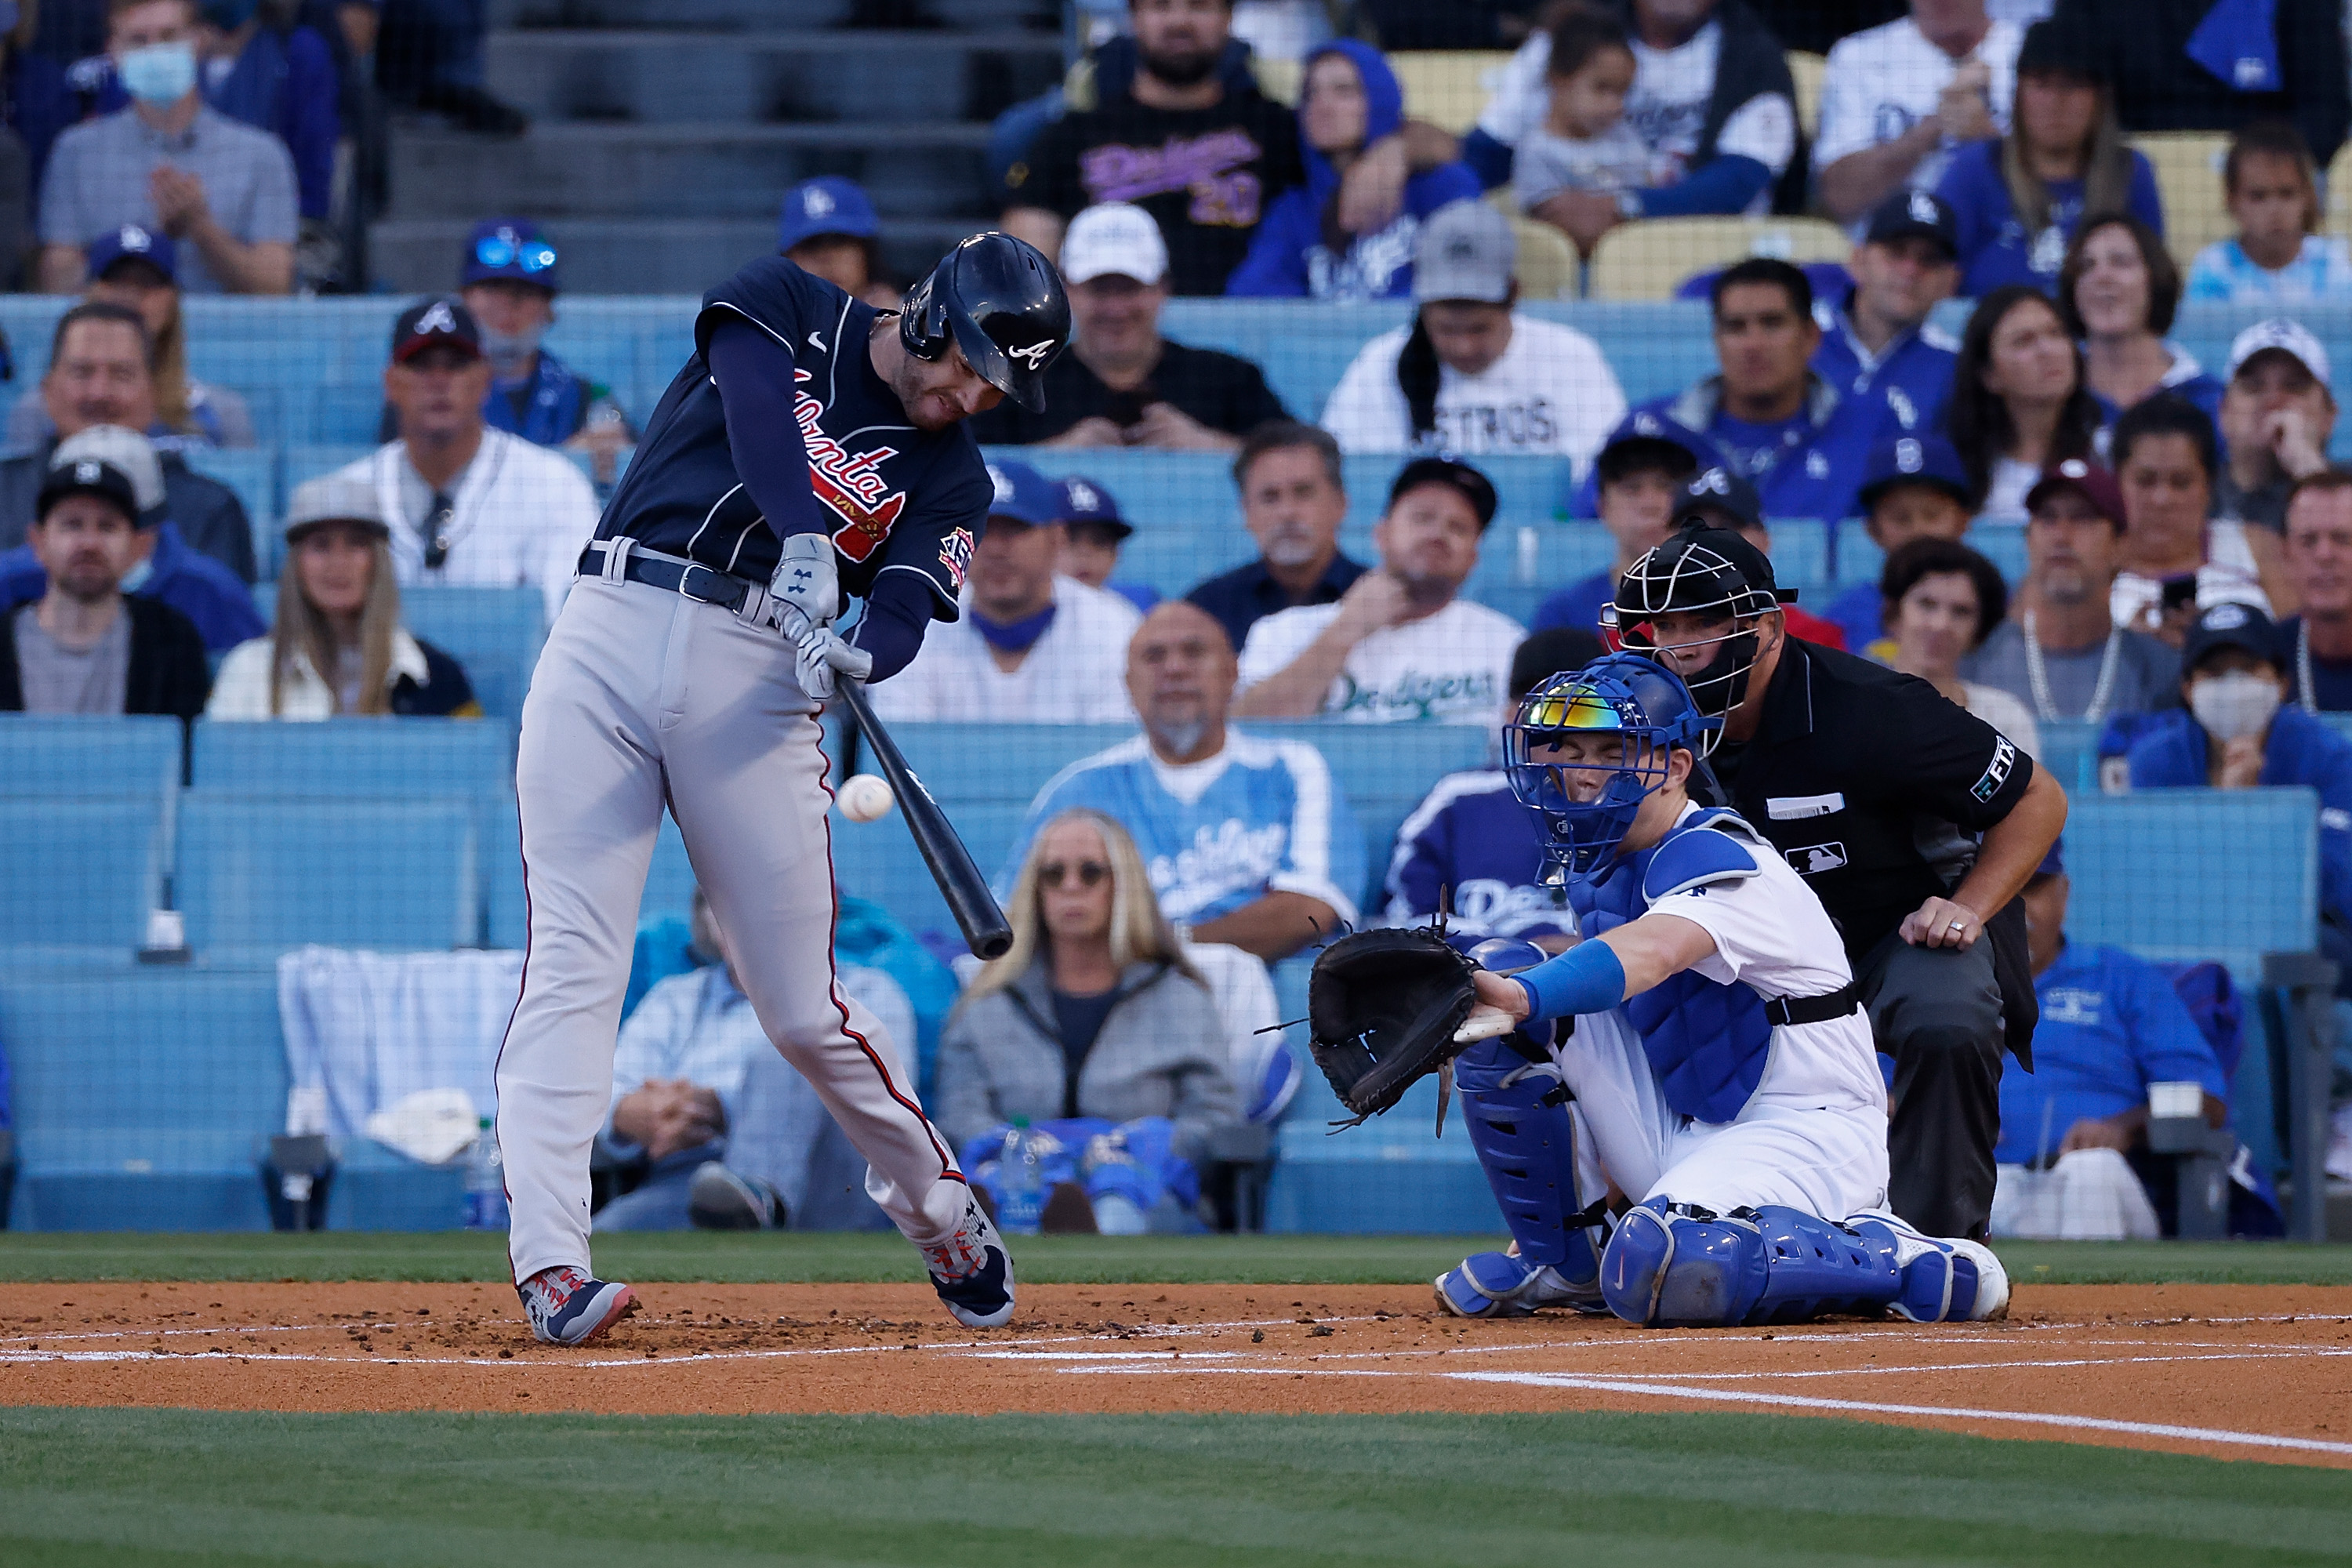 Freddie Freeman #5 of the Atlanta Braves hits a two run home run during the first inning of Game Five of the National League Championship Series against the Los Angeles Dodgers at Dodger Stadium on October 21, 2021 in Los Angeles, California.